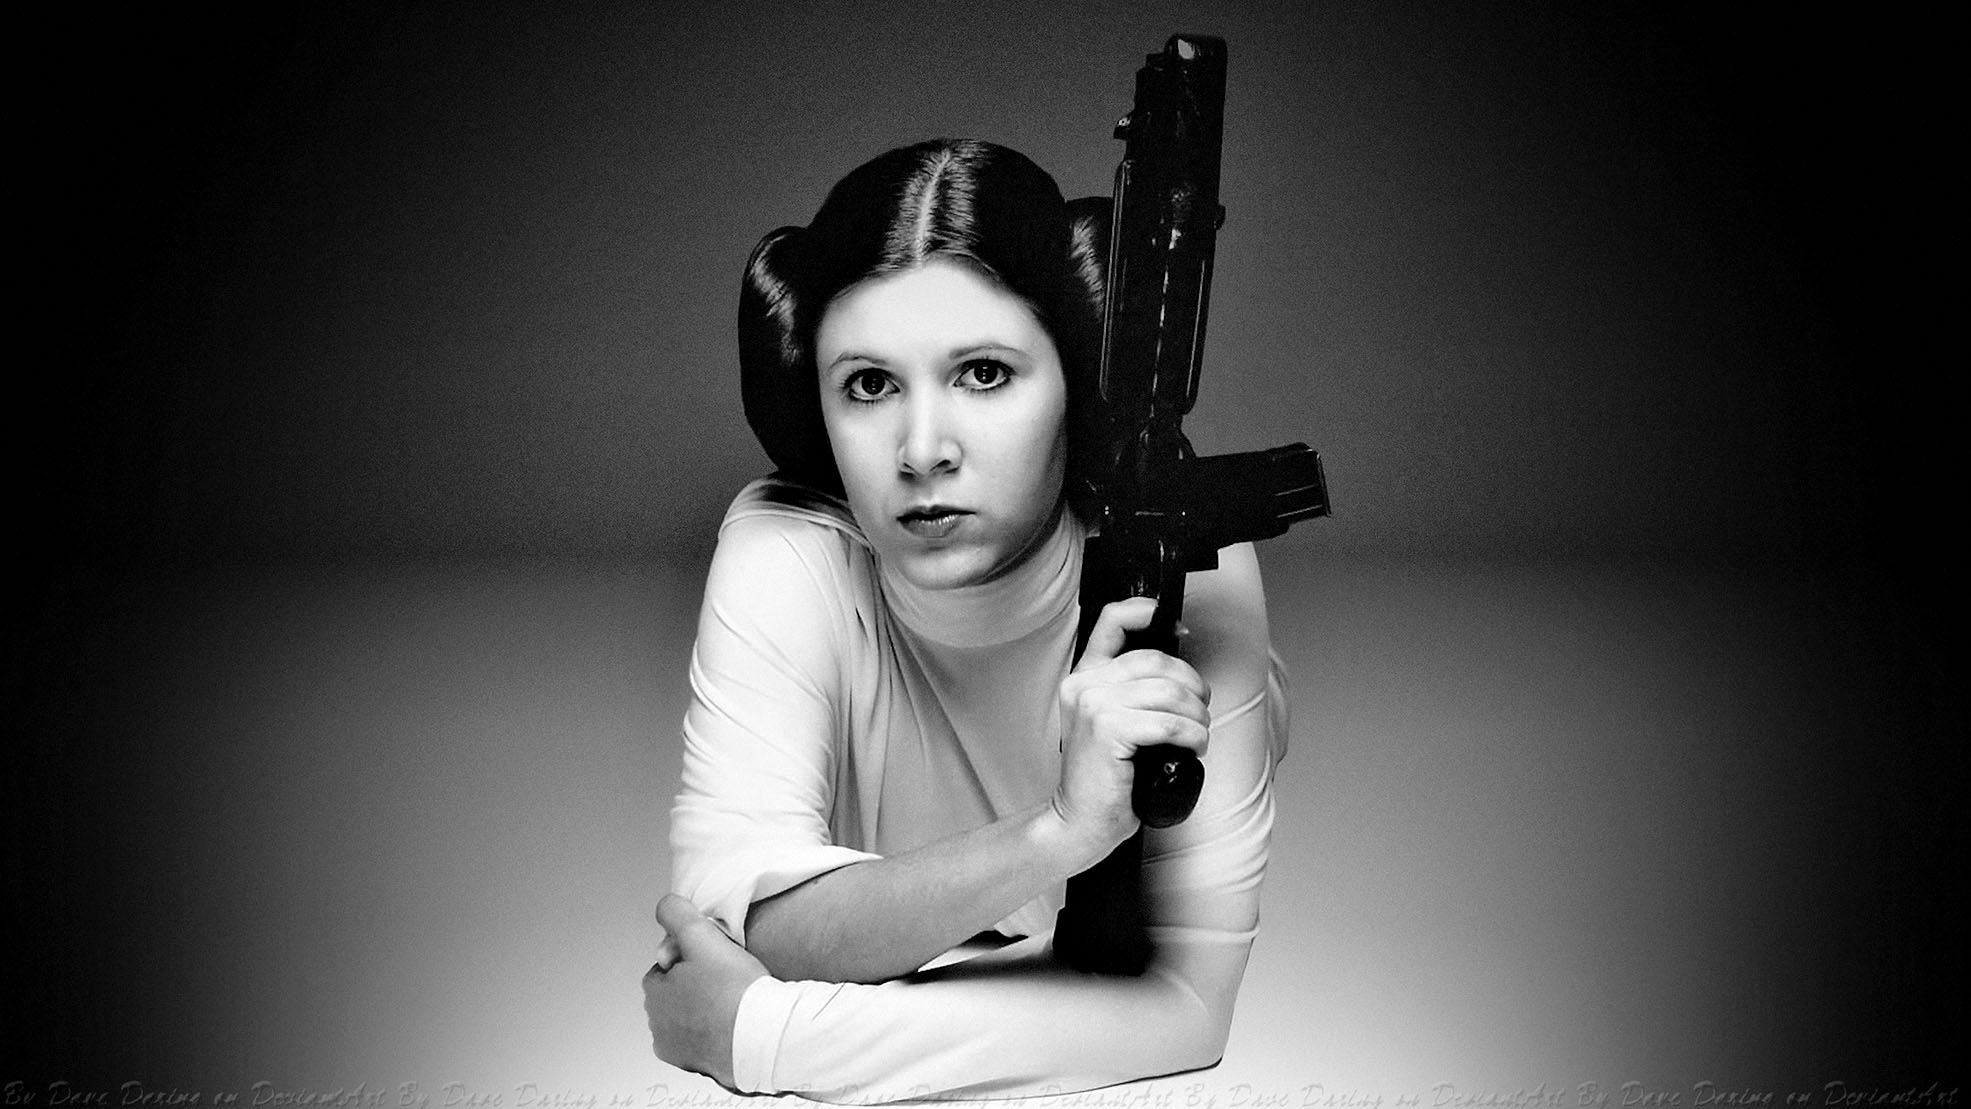 carrie-fisher-026-by-dave-daring-d679fpu